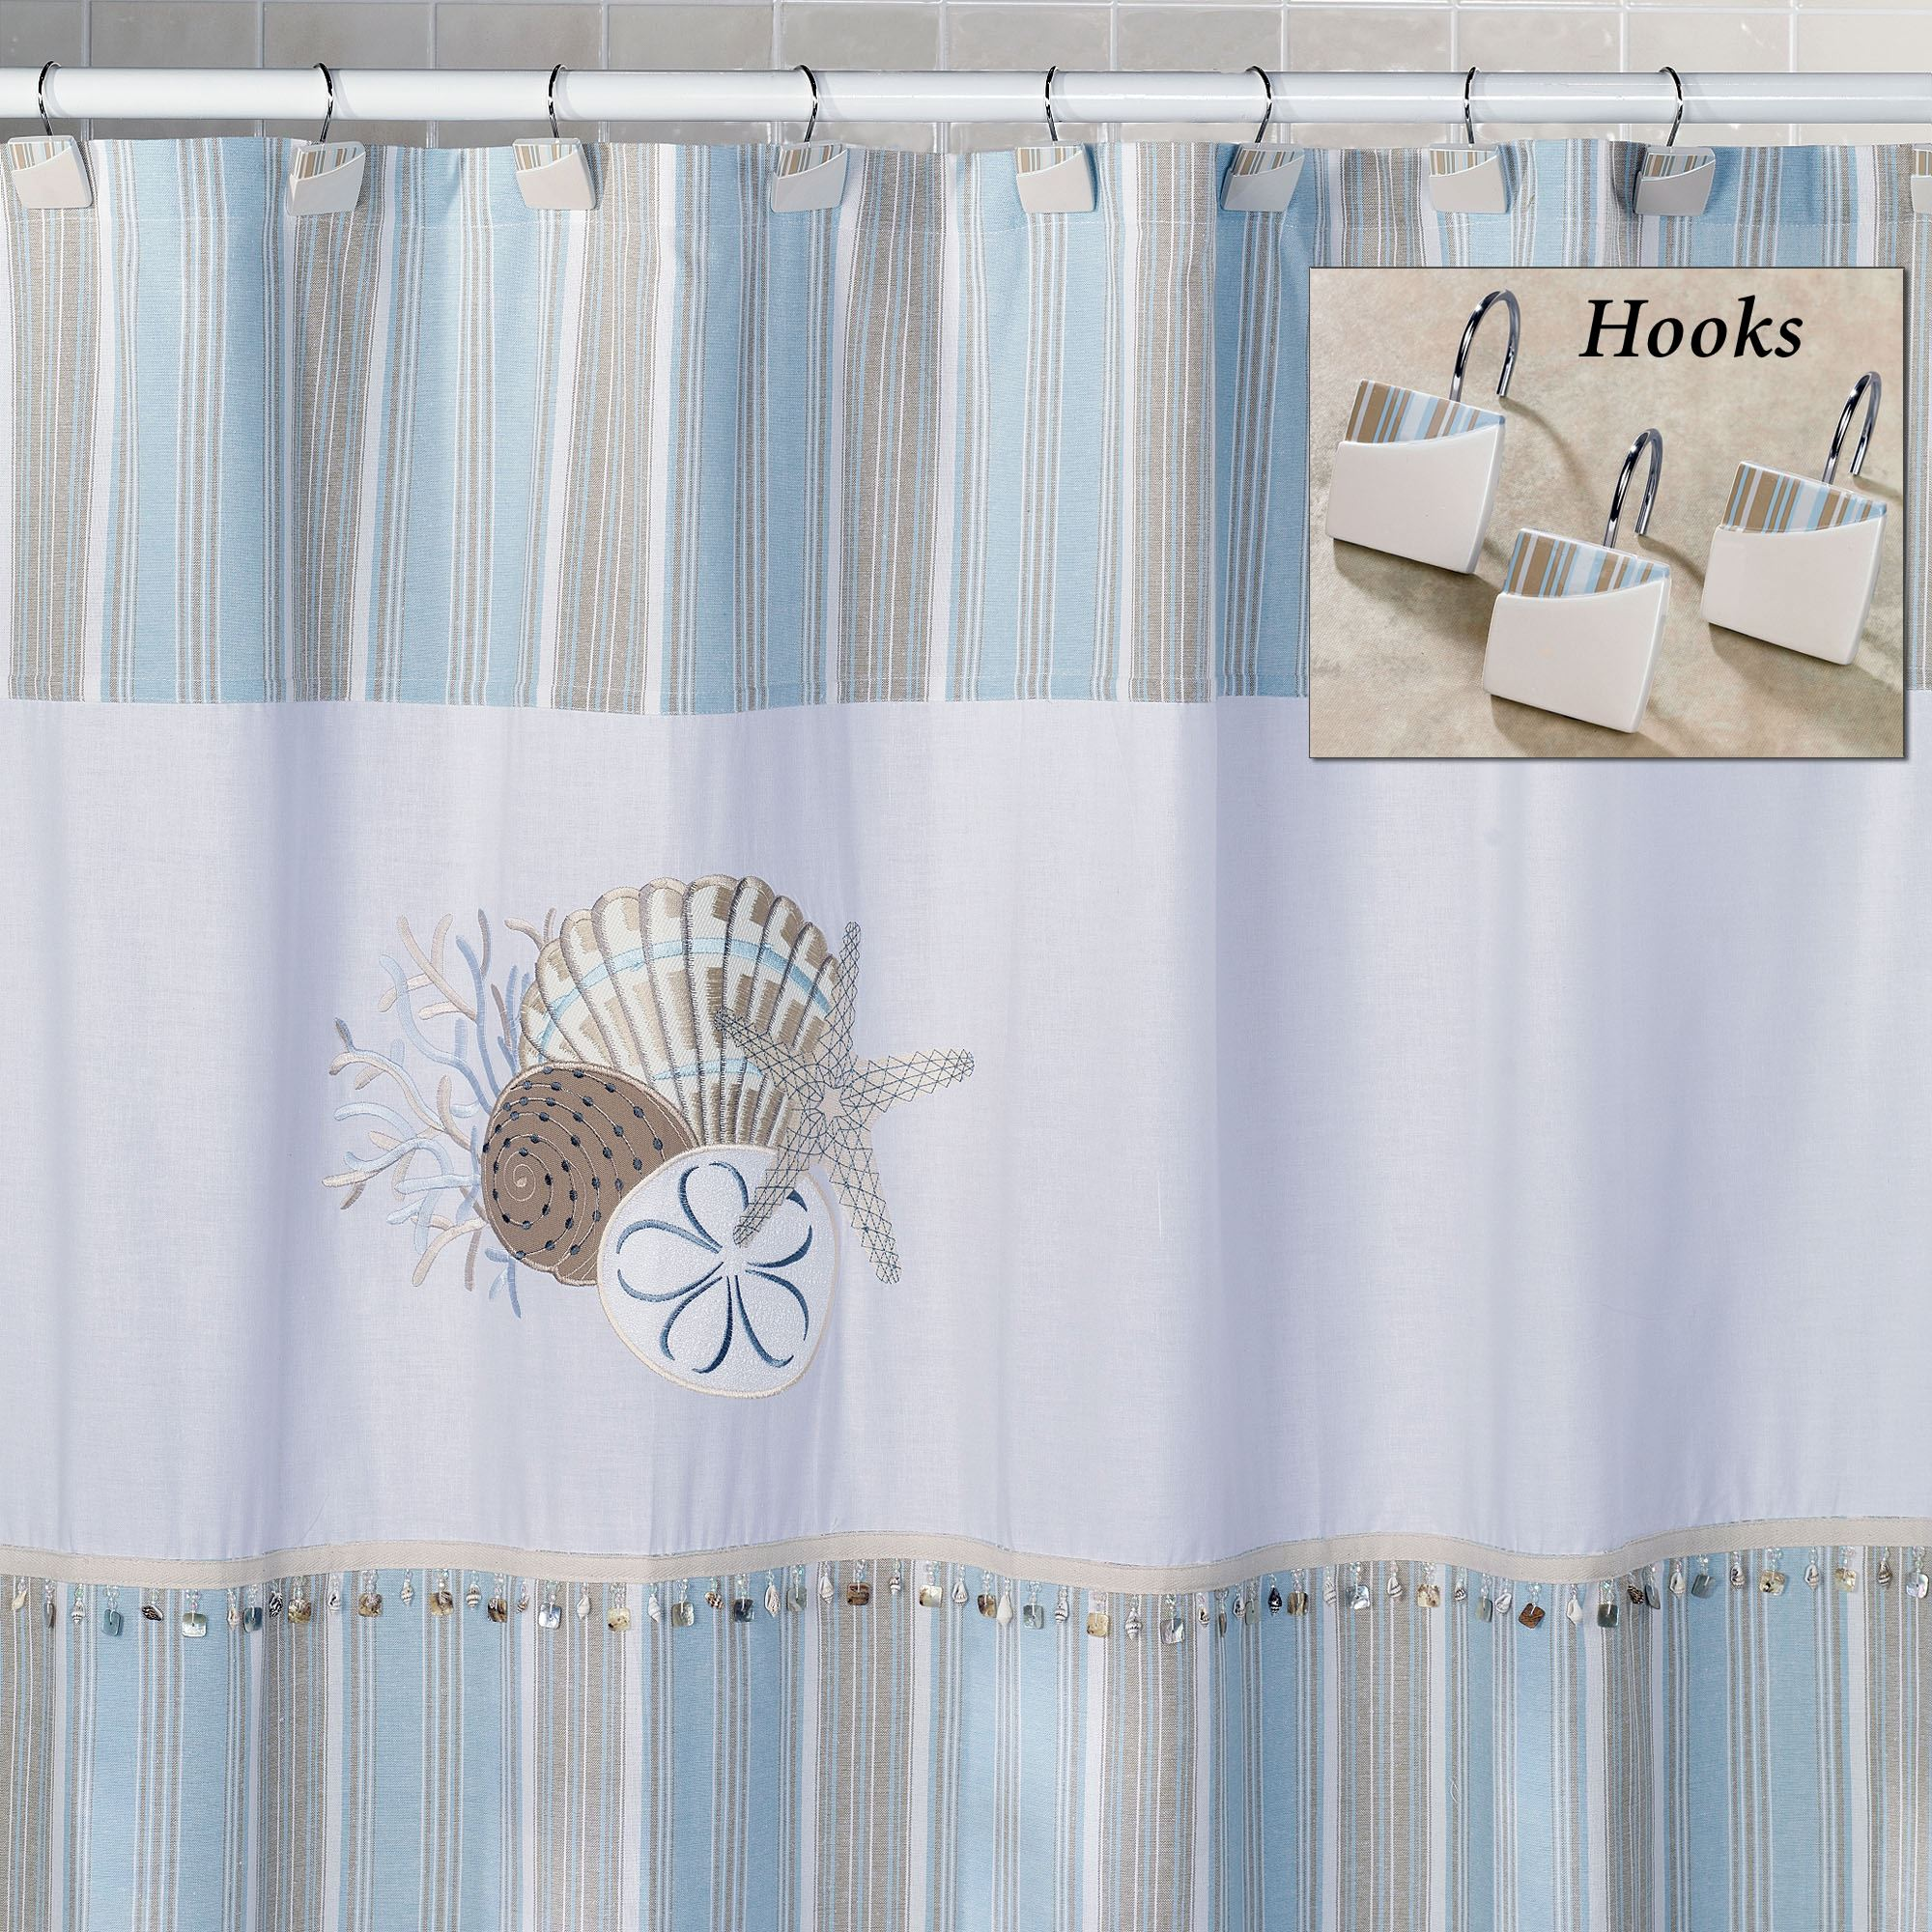 By The Sea Shower Curtain And Hooks